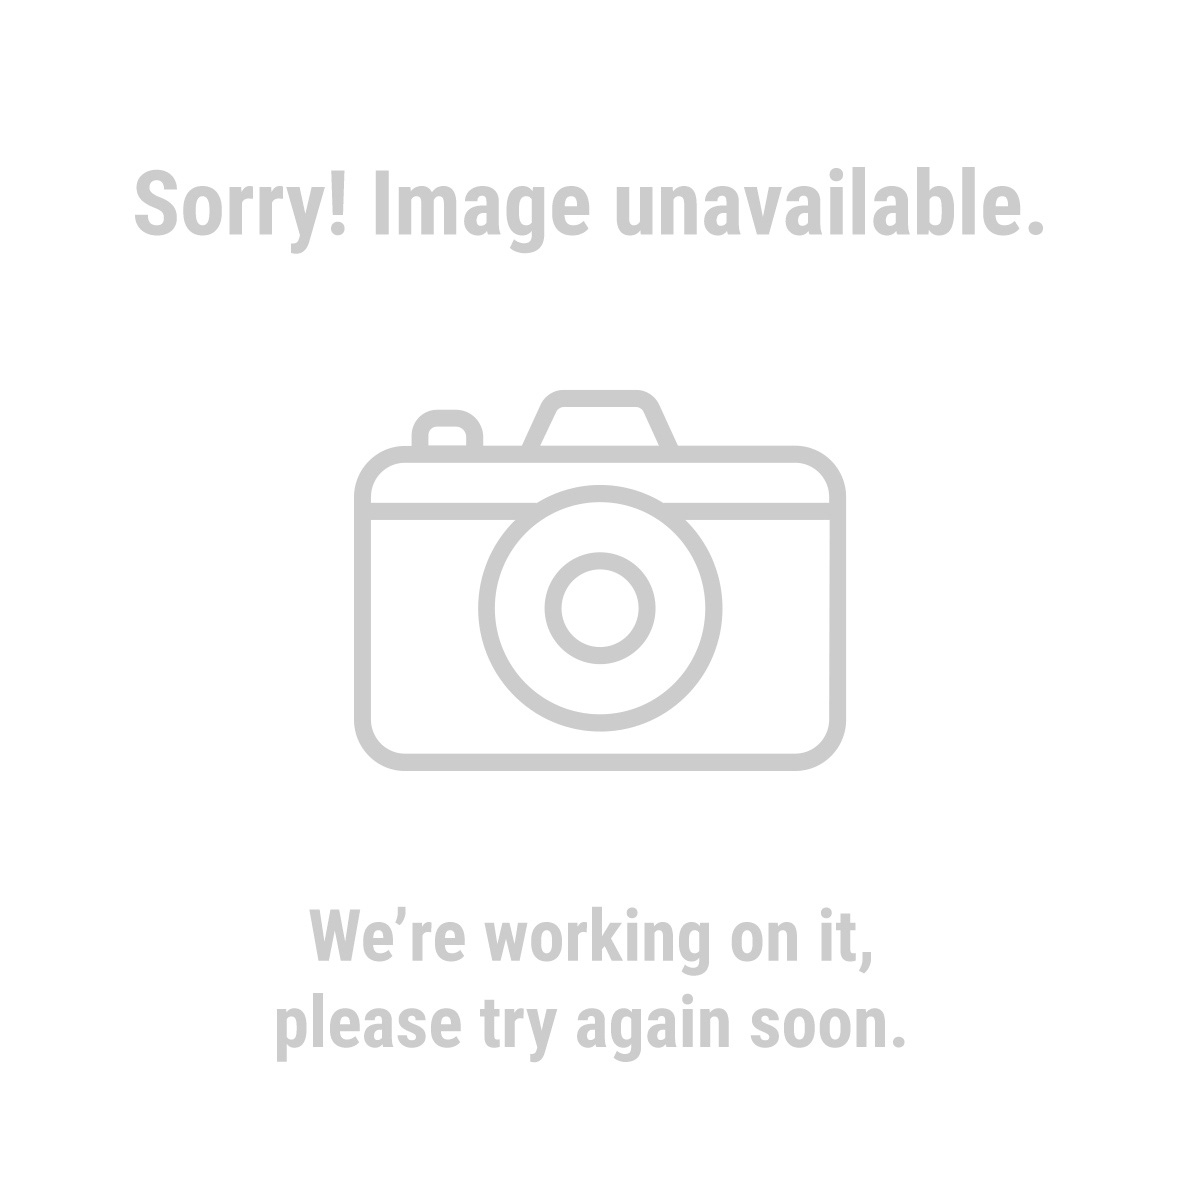 Storehouse 67550 40 Piece Molly Bolt Assortment